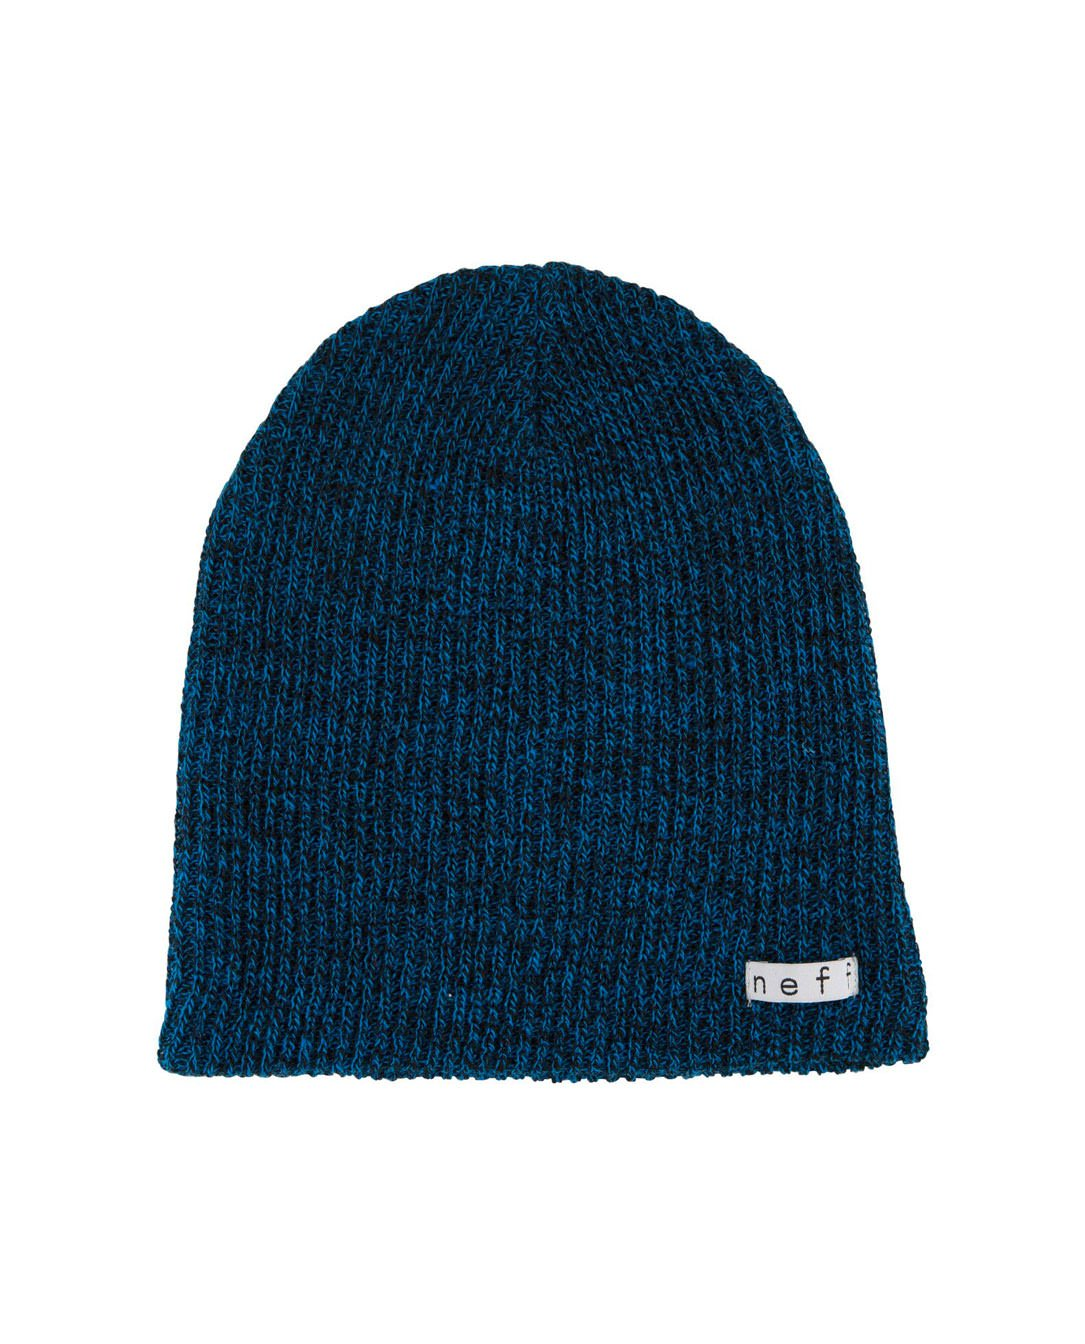 NEFF BEANIE DAILY HEATHER - LM BOARD STORE